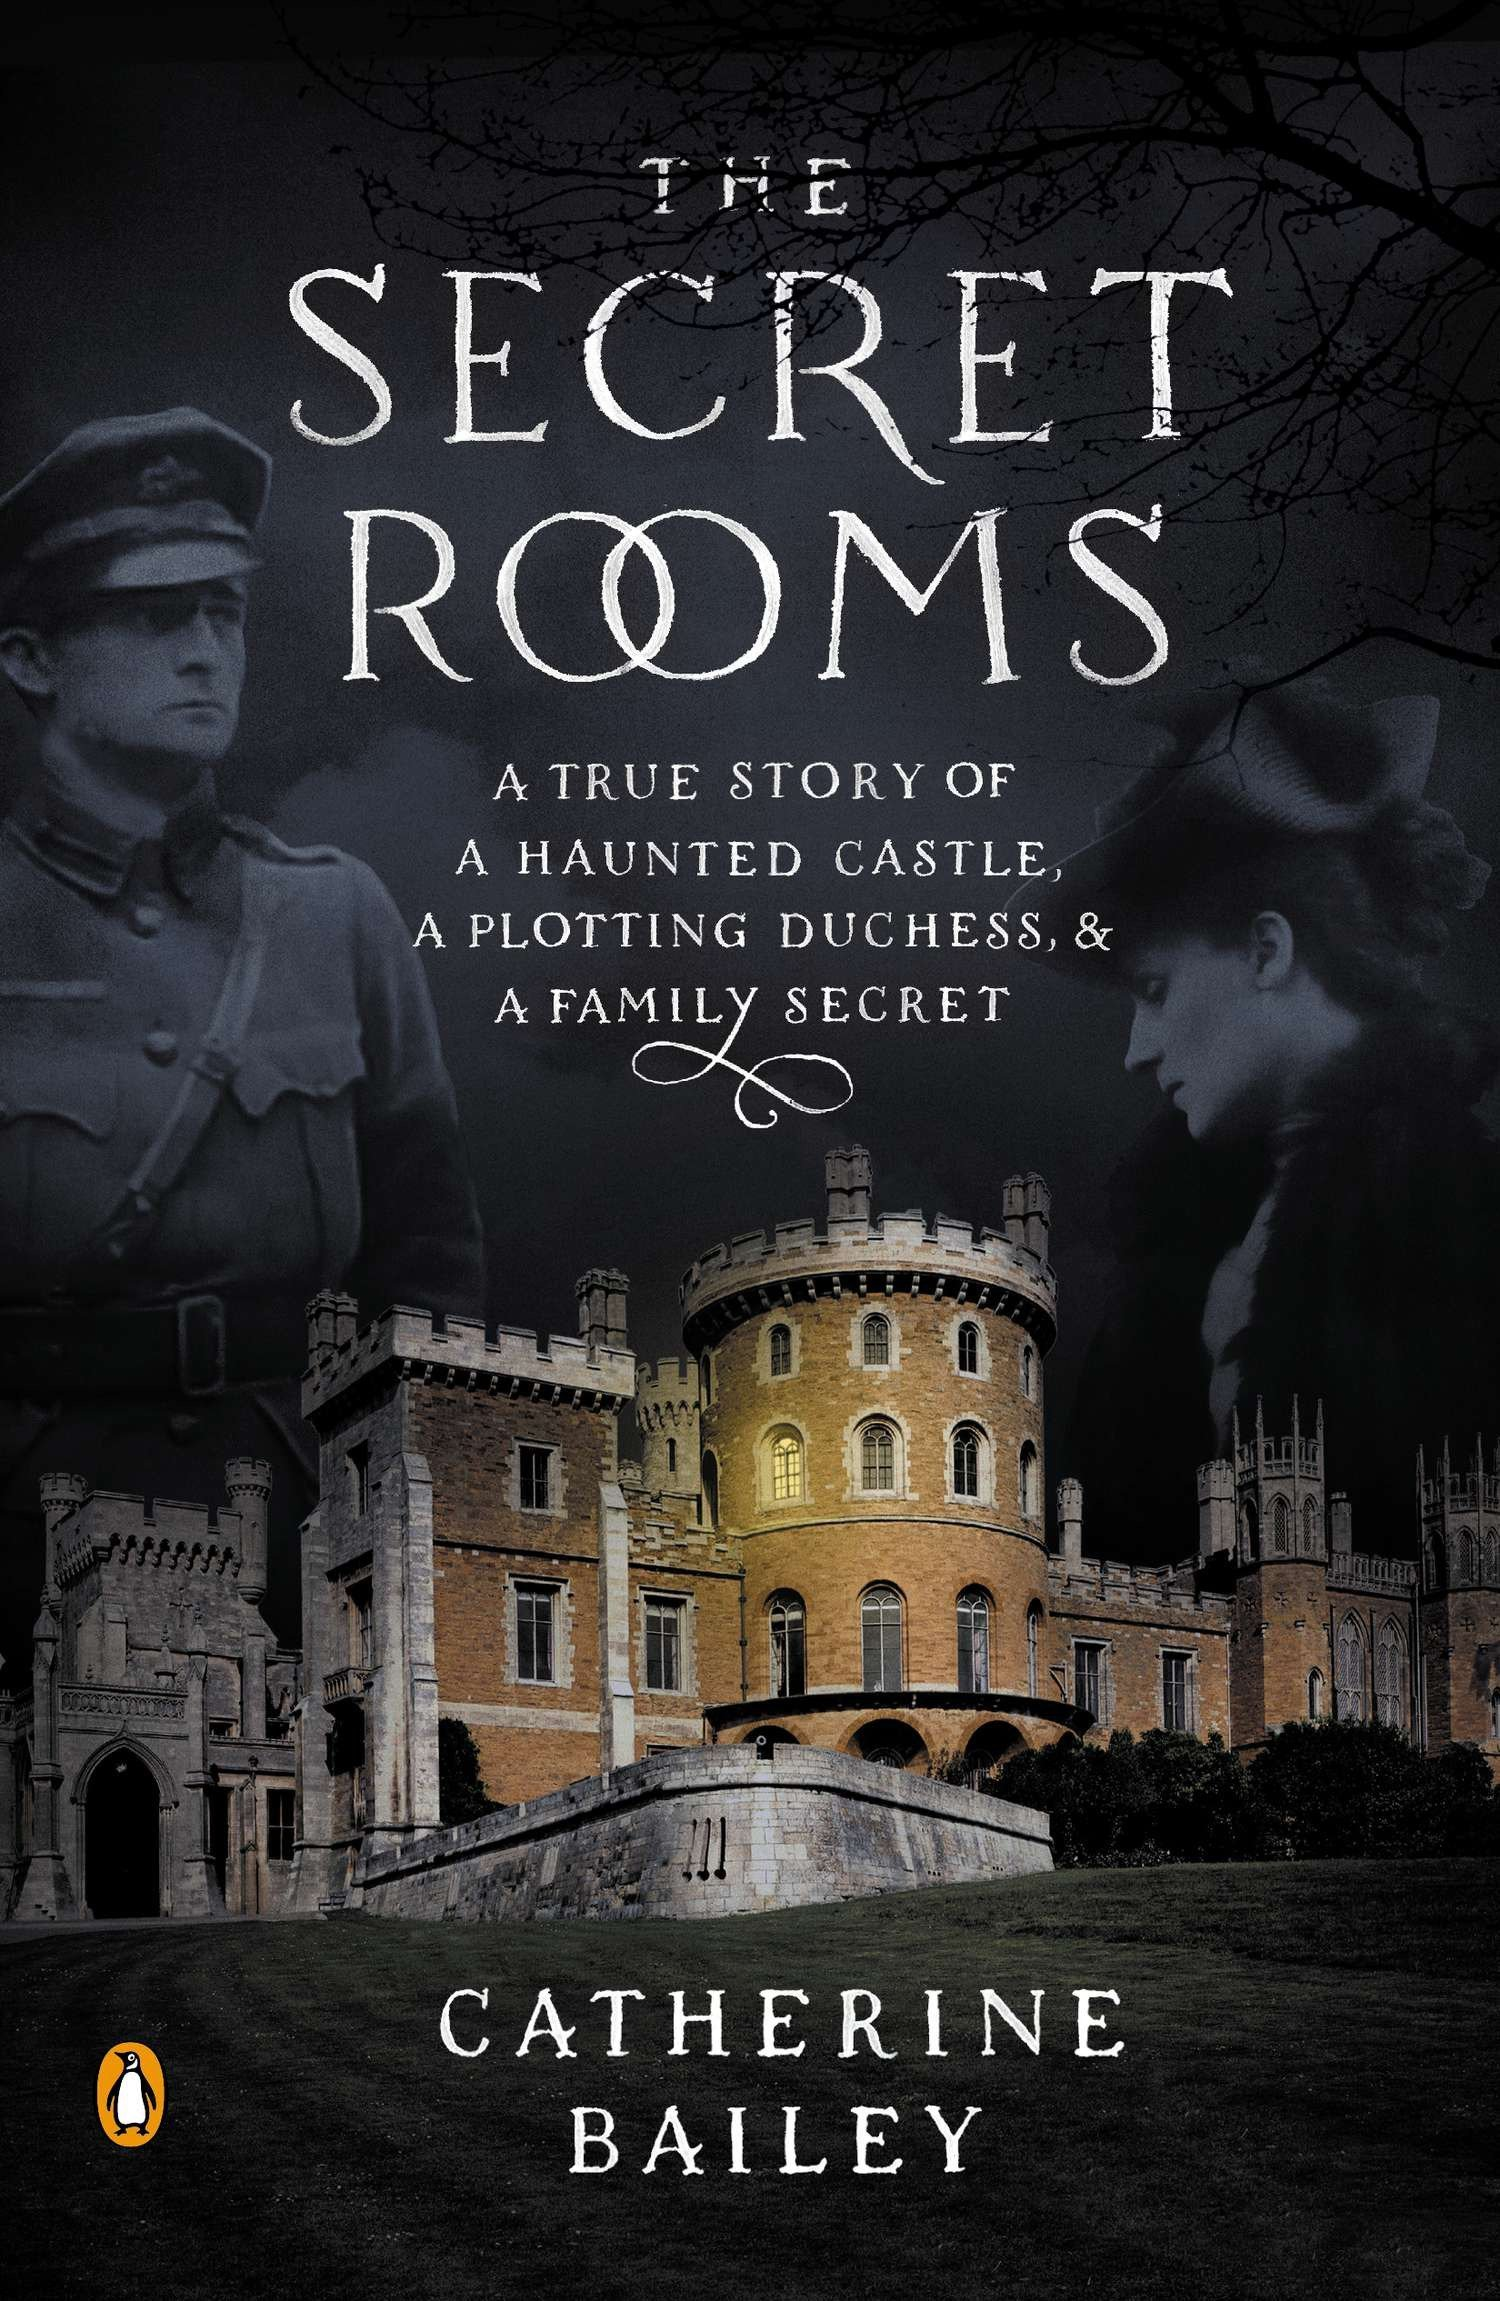 Image result for The Secret Rooms by Catherine Bailey